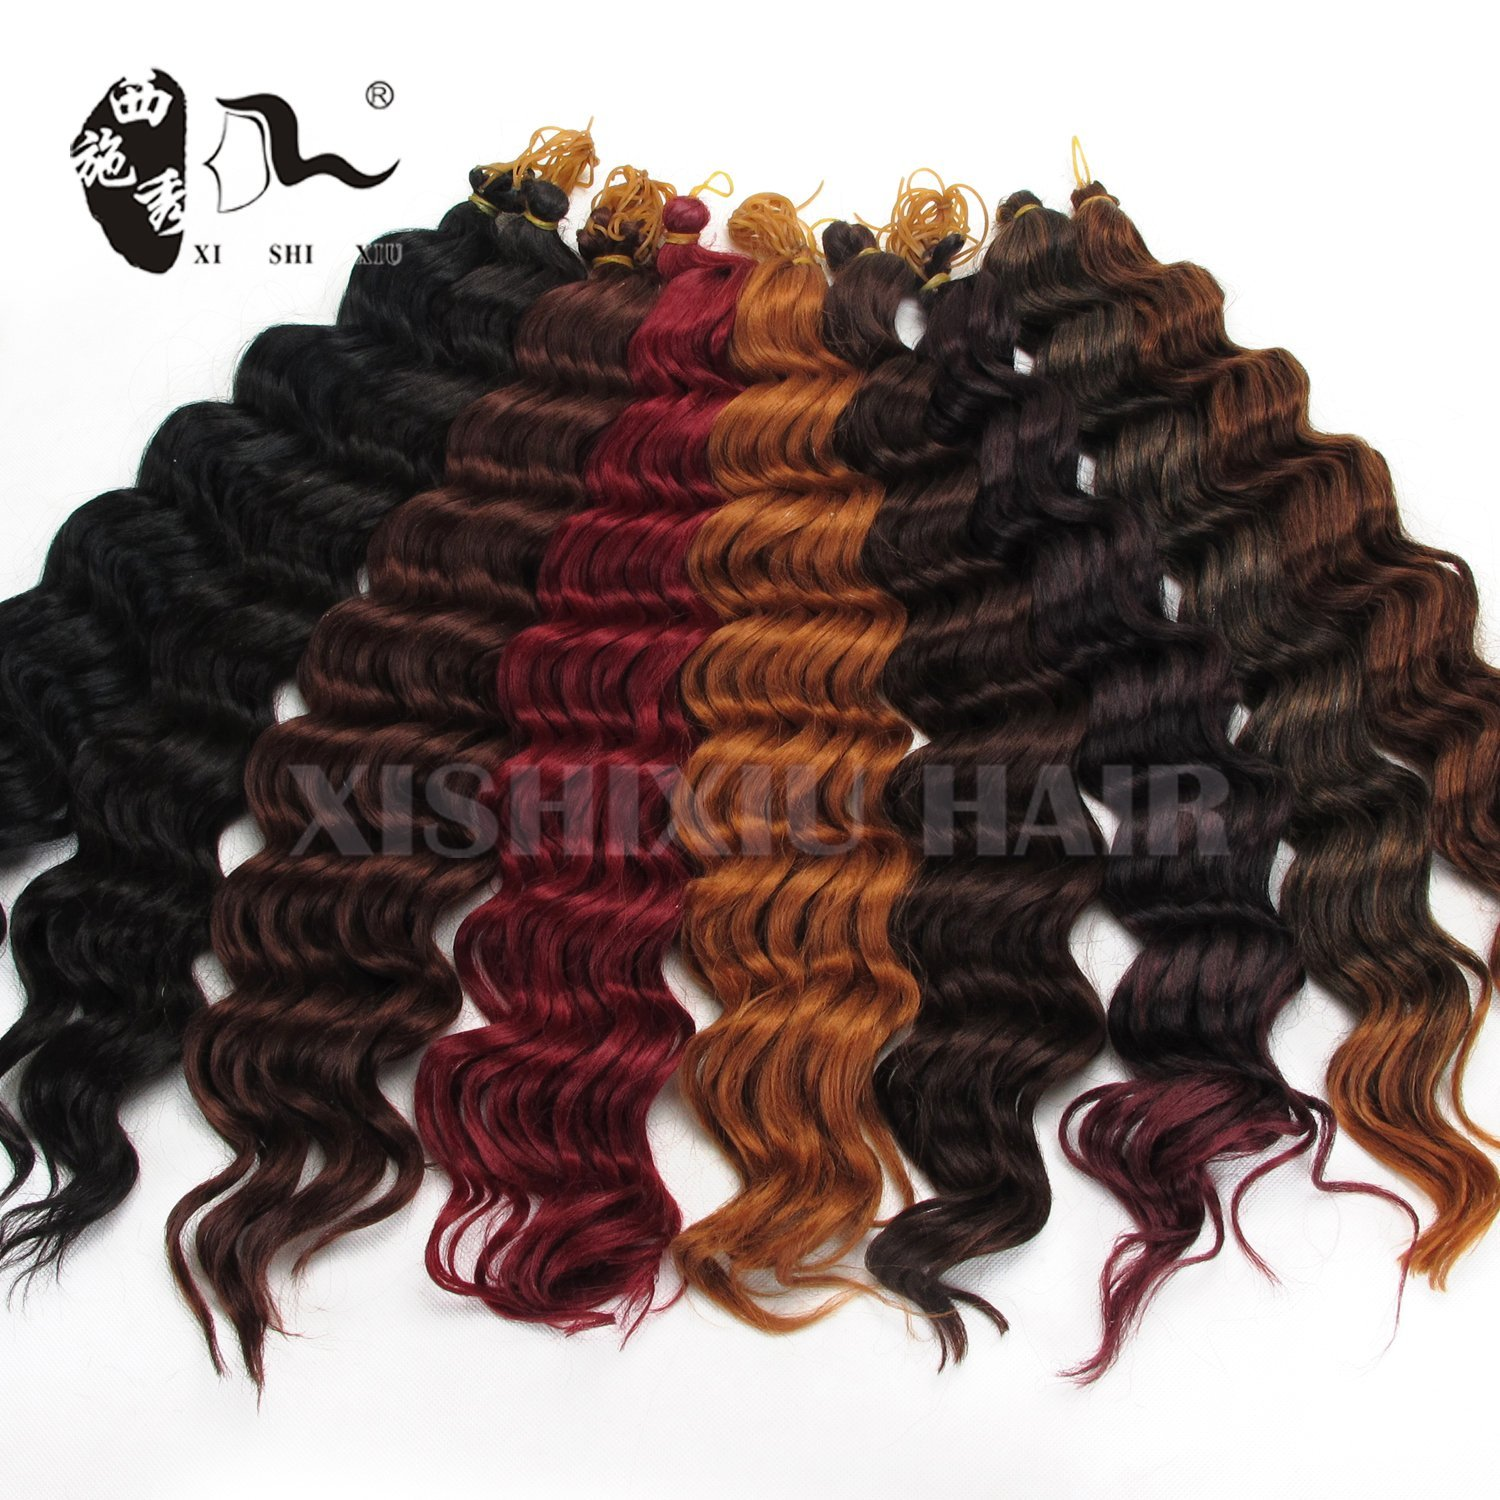 Buy New Premium Deep Wave Synthetic Hair Extension Curly Synthetic